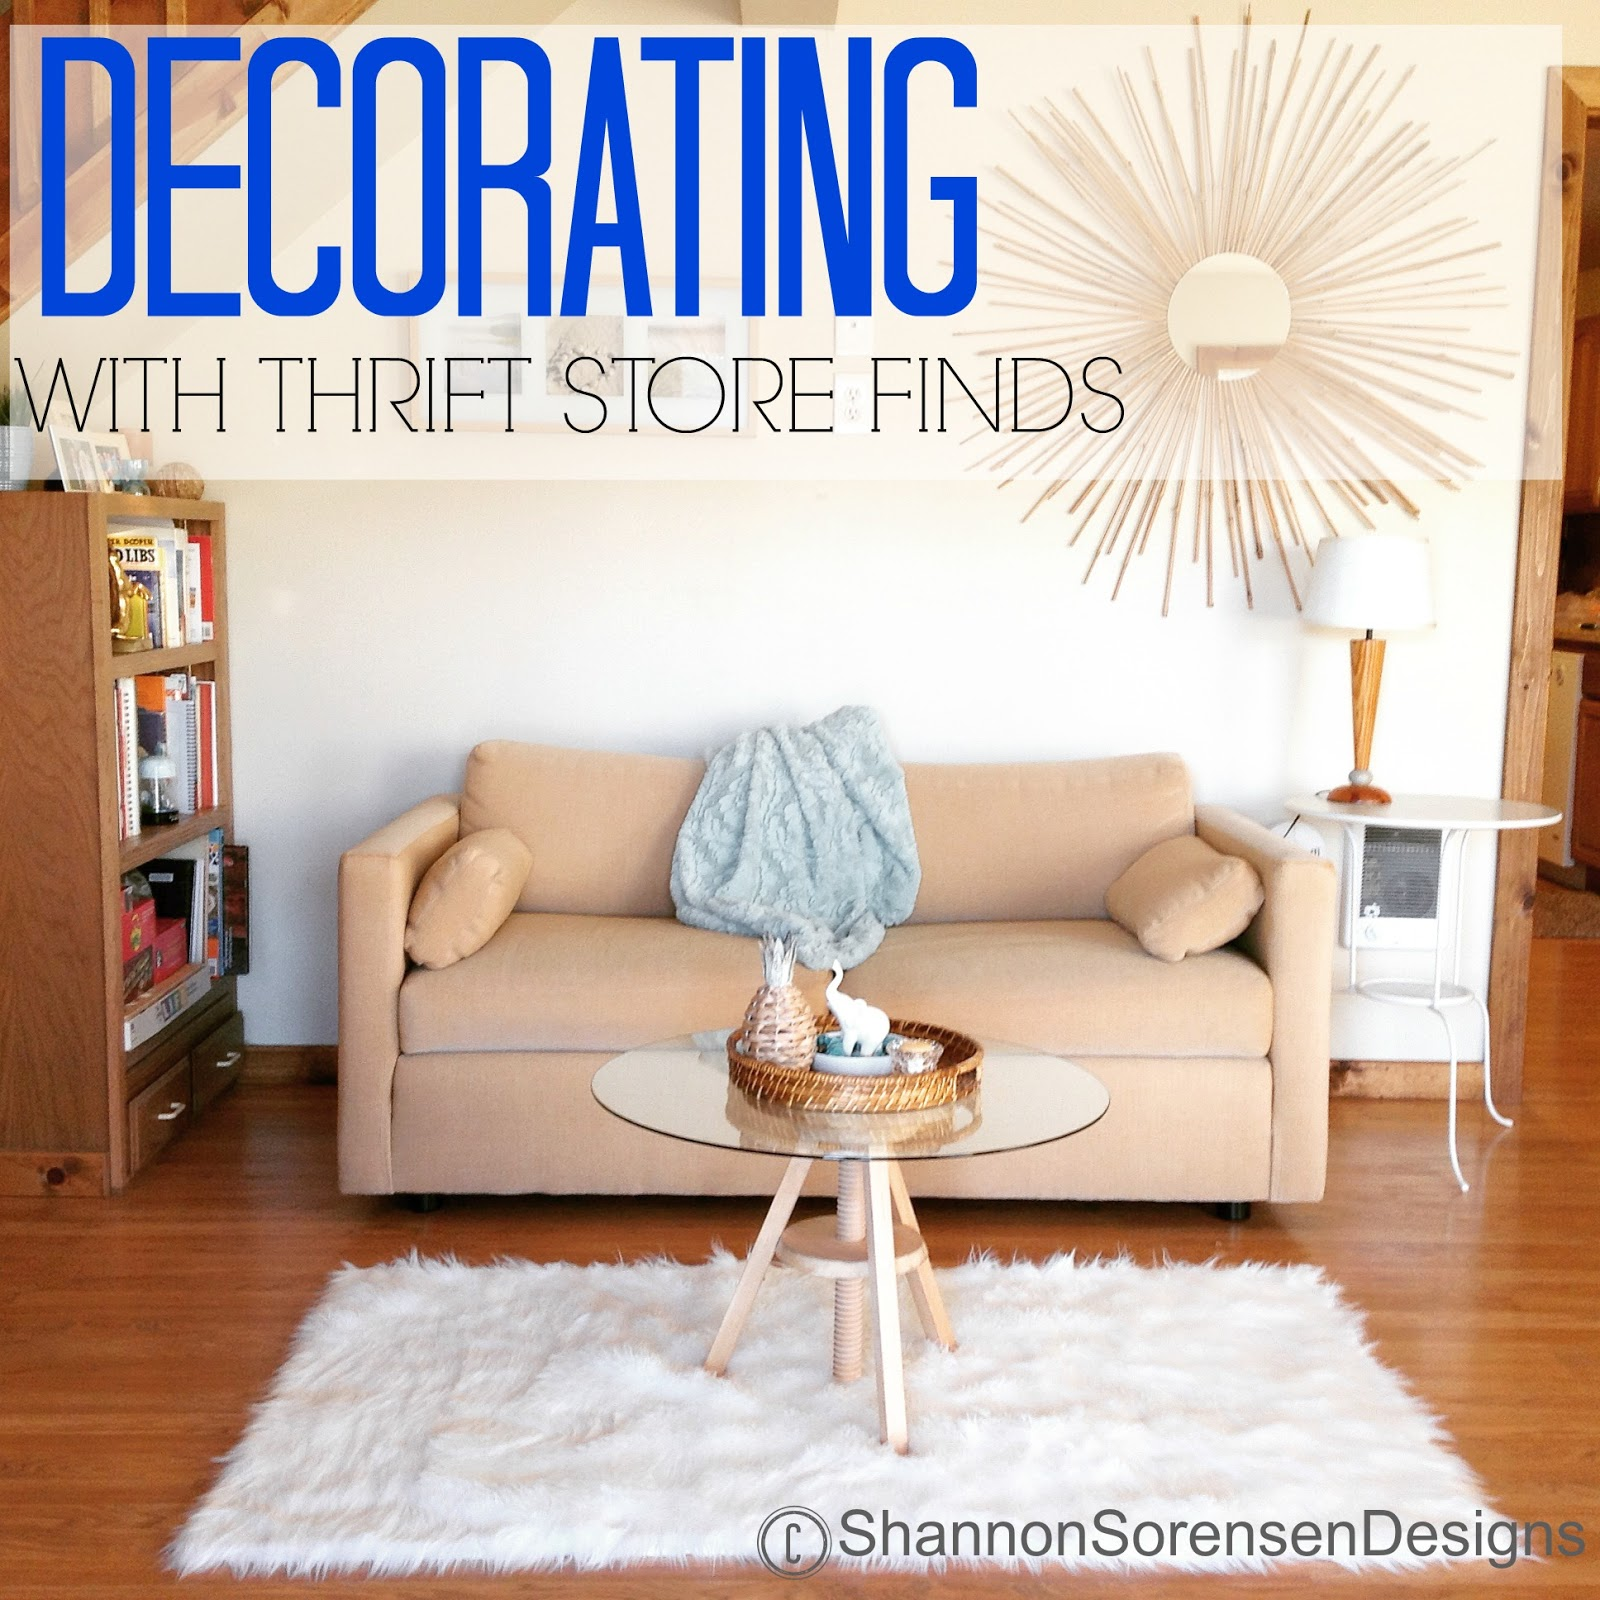 decorating with thrifted furniture and diy on a budget